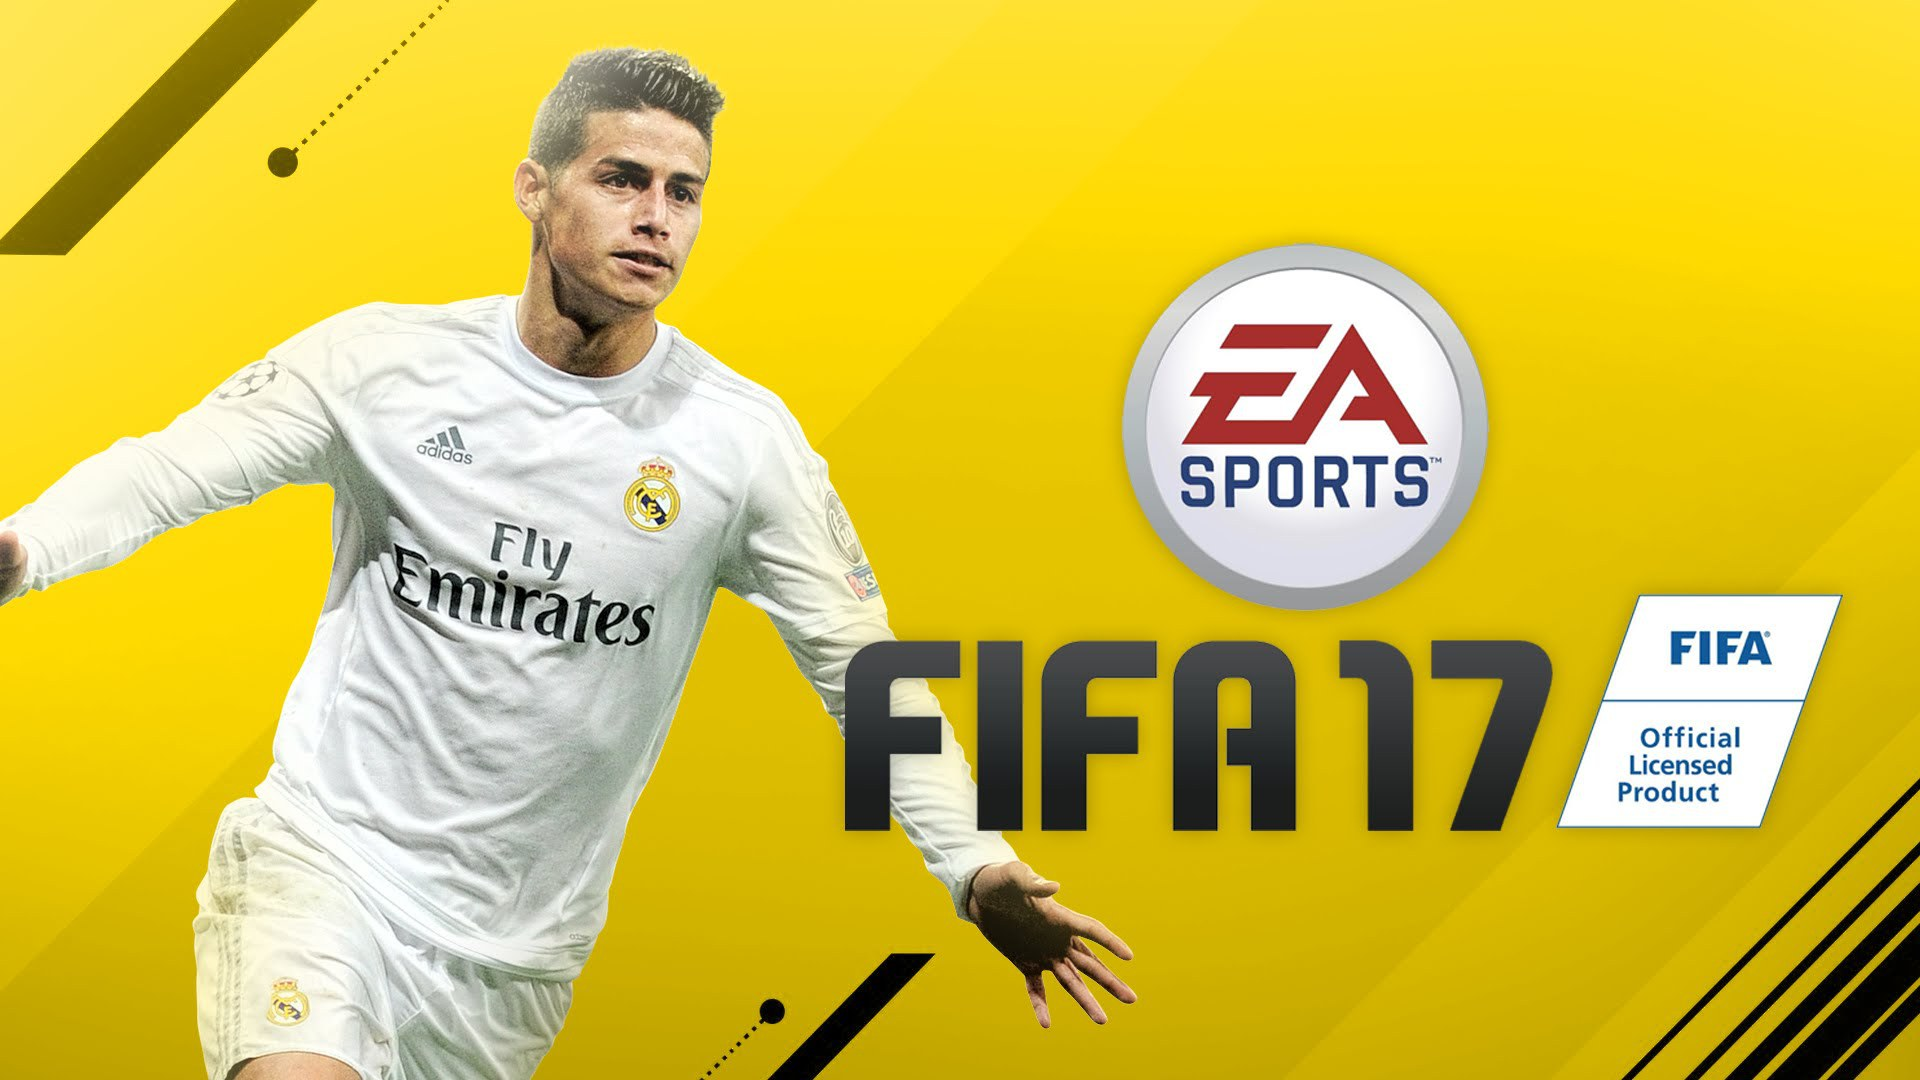 fifa 17 wallpapers images photos pictures backgrounds